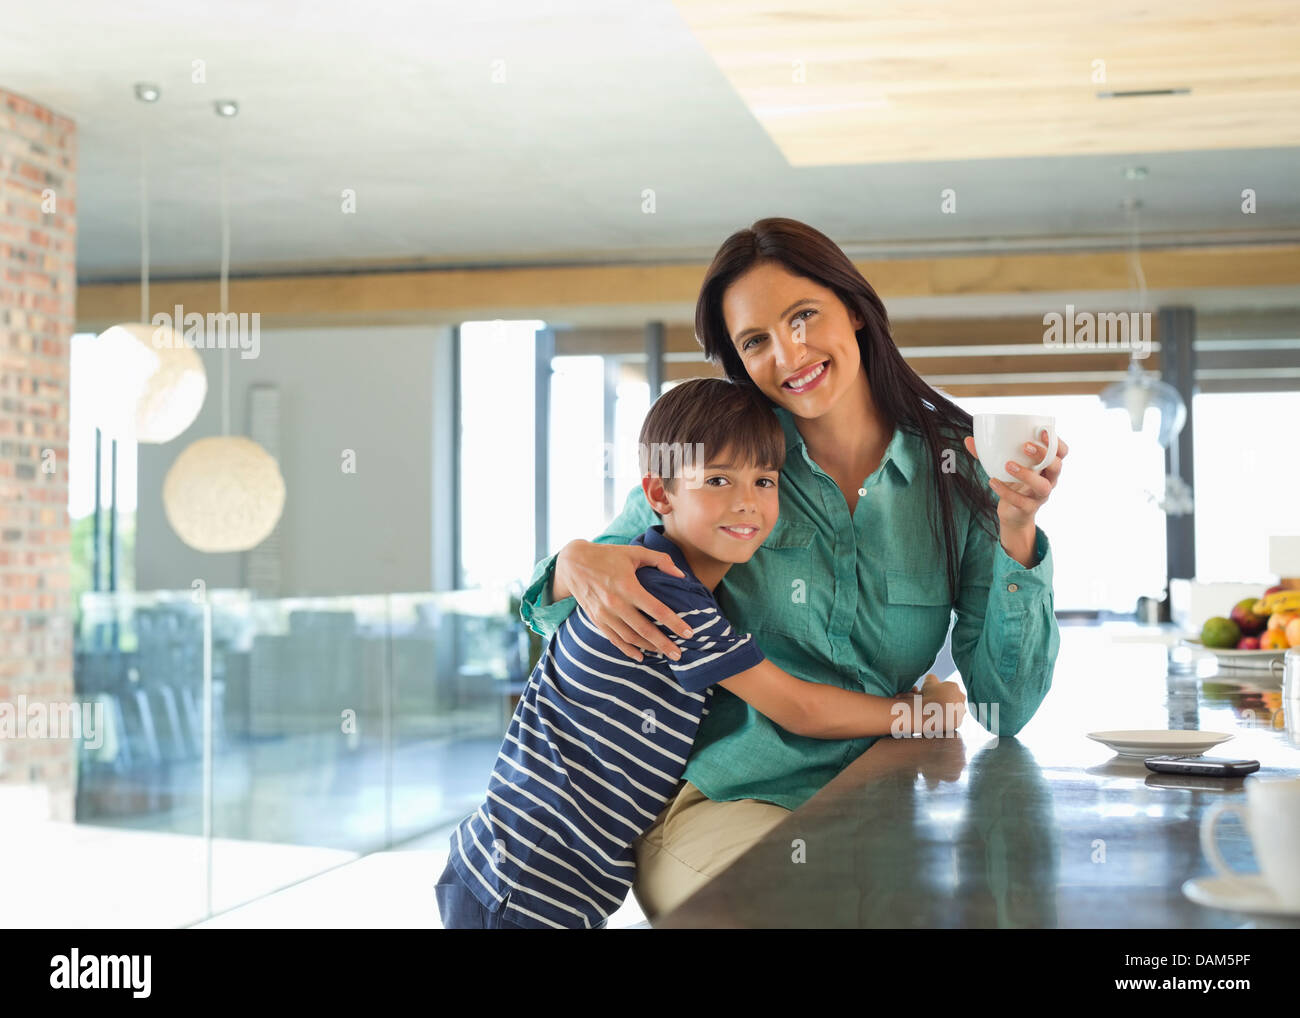 Mother and son smiling in kitchen - Stock Image